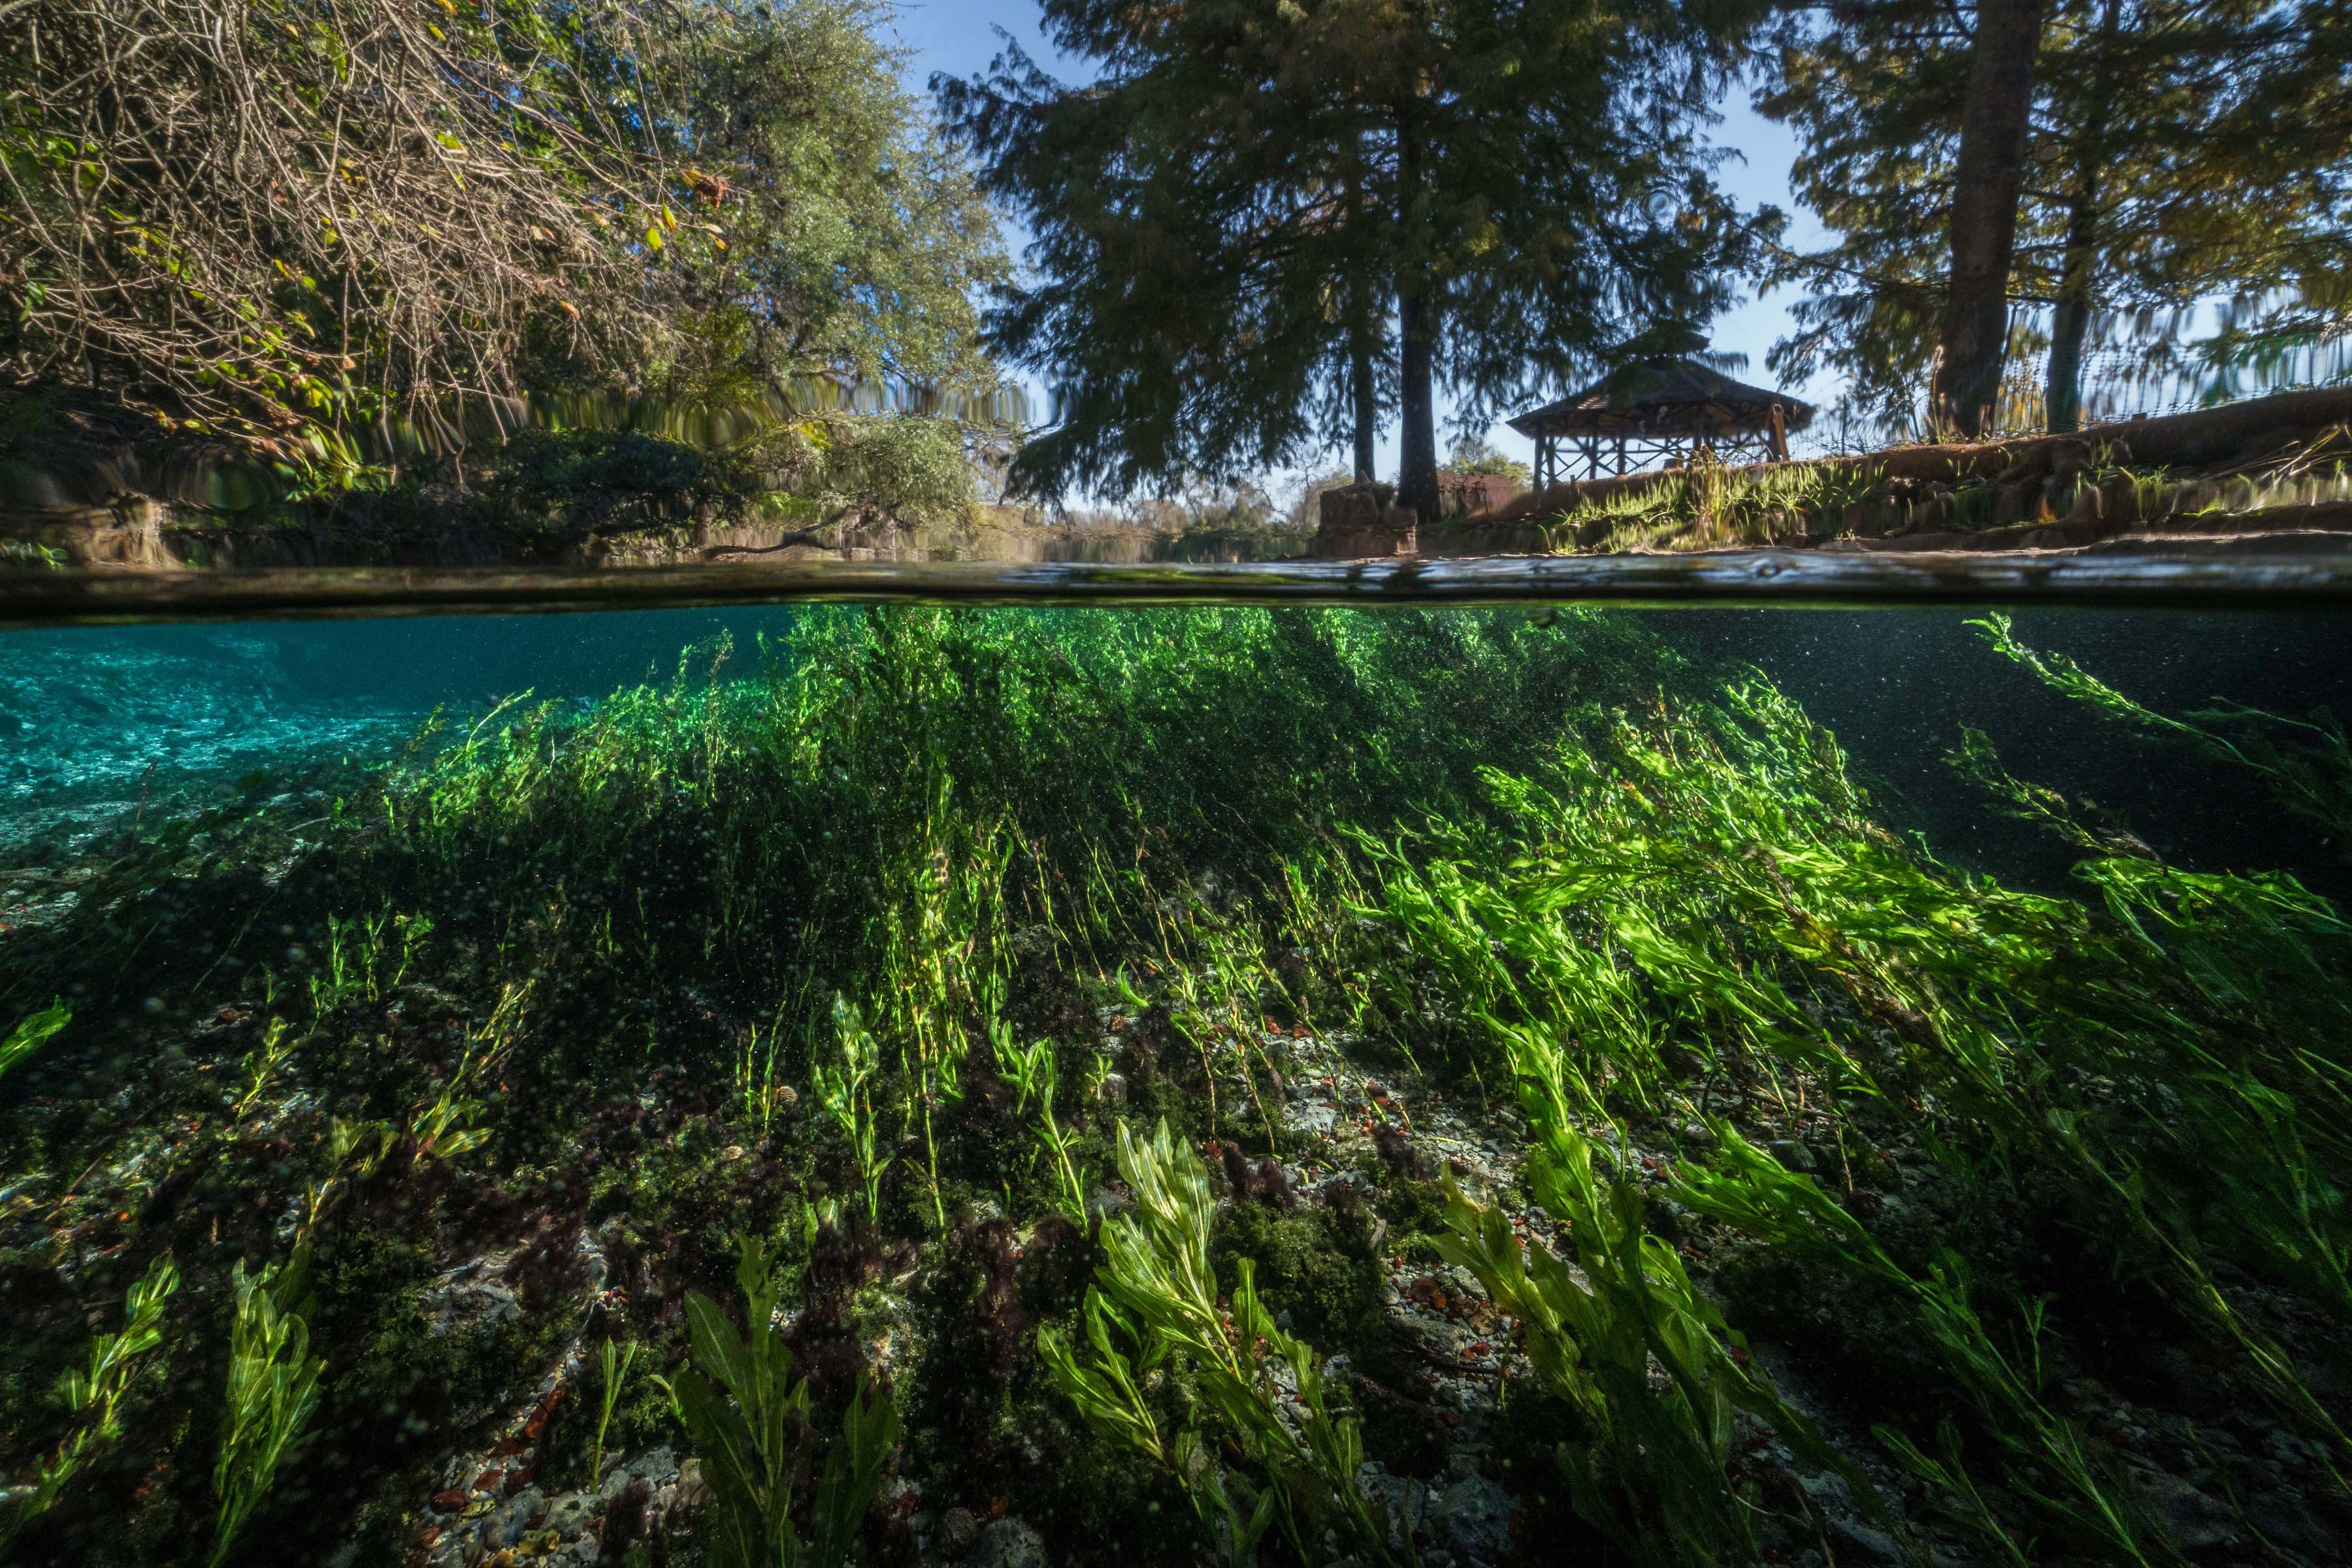 Environmental Monitor | Managing and Studying Texas's Edwards Aquifer